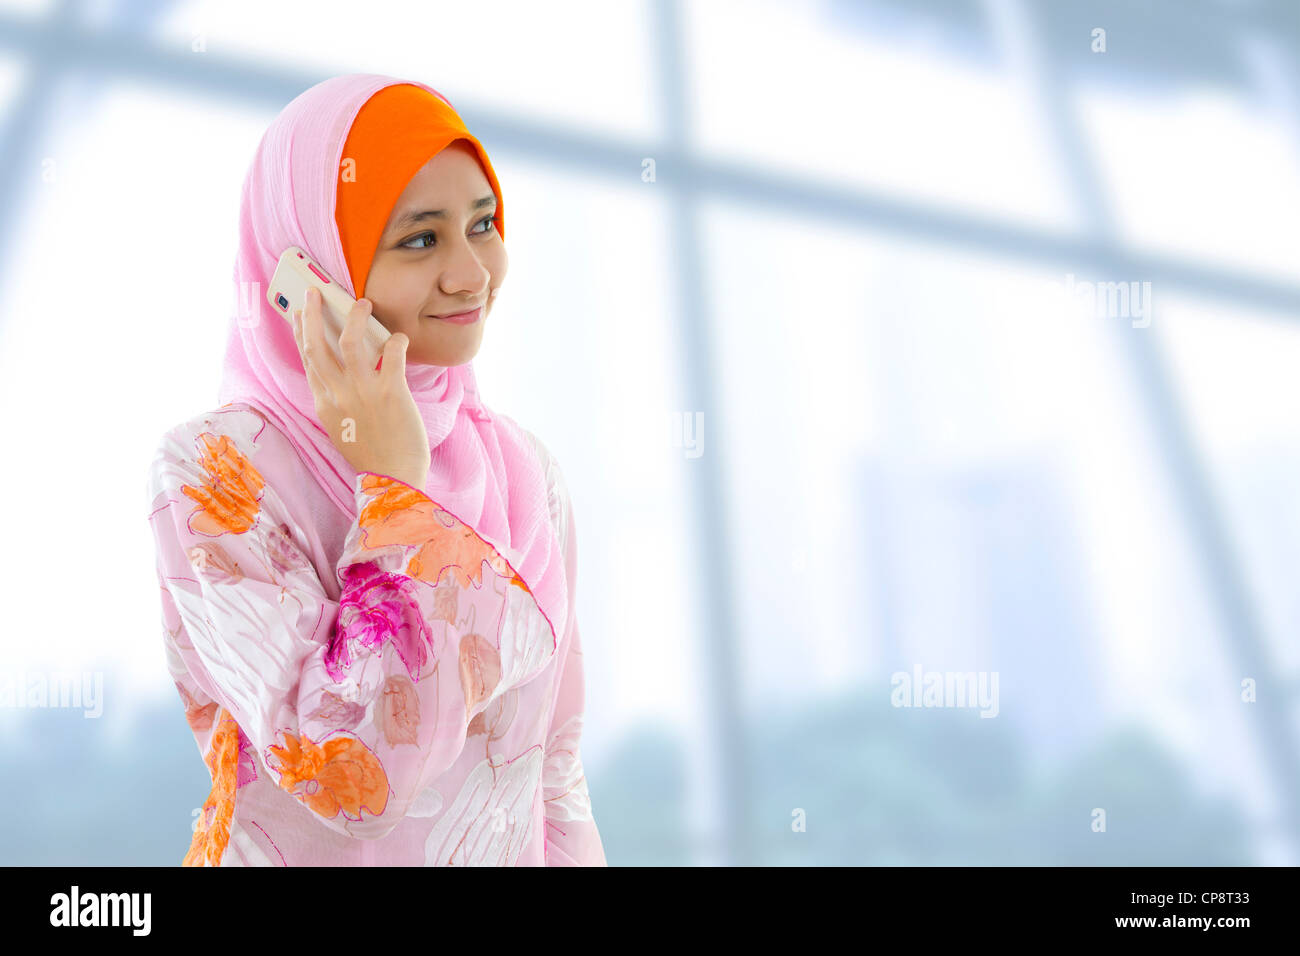 Muslim business woman on the phone, looking at side. - Stock Image